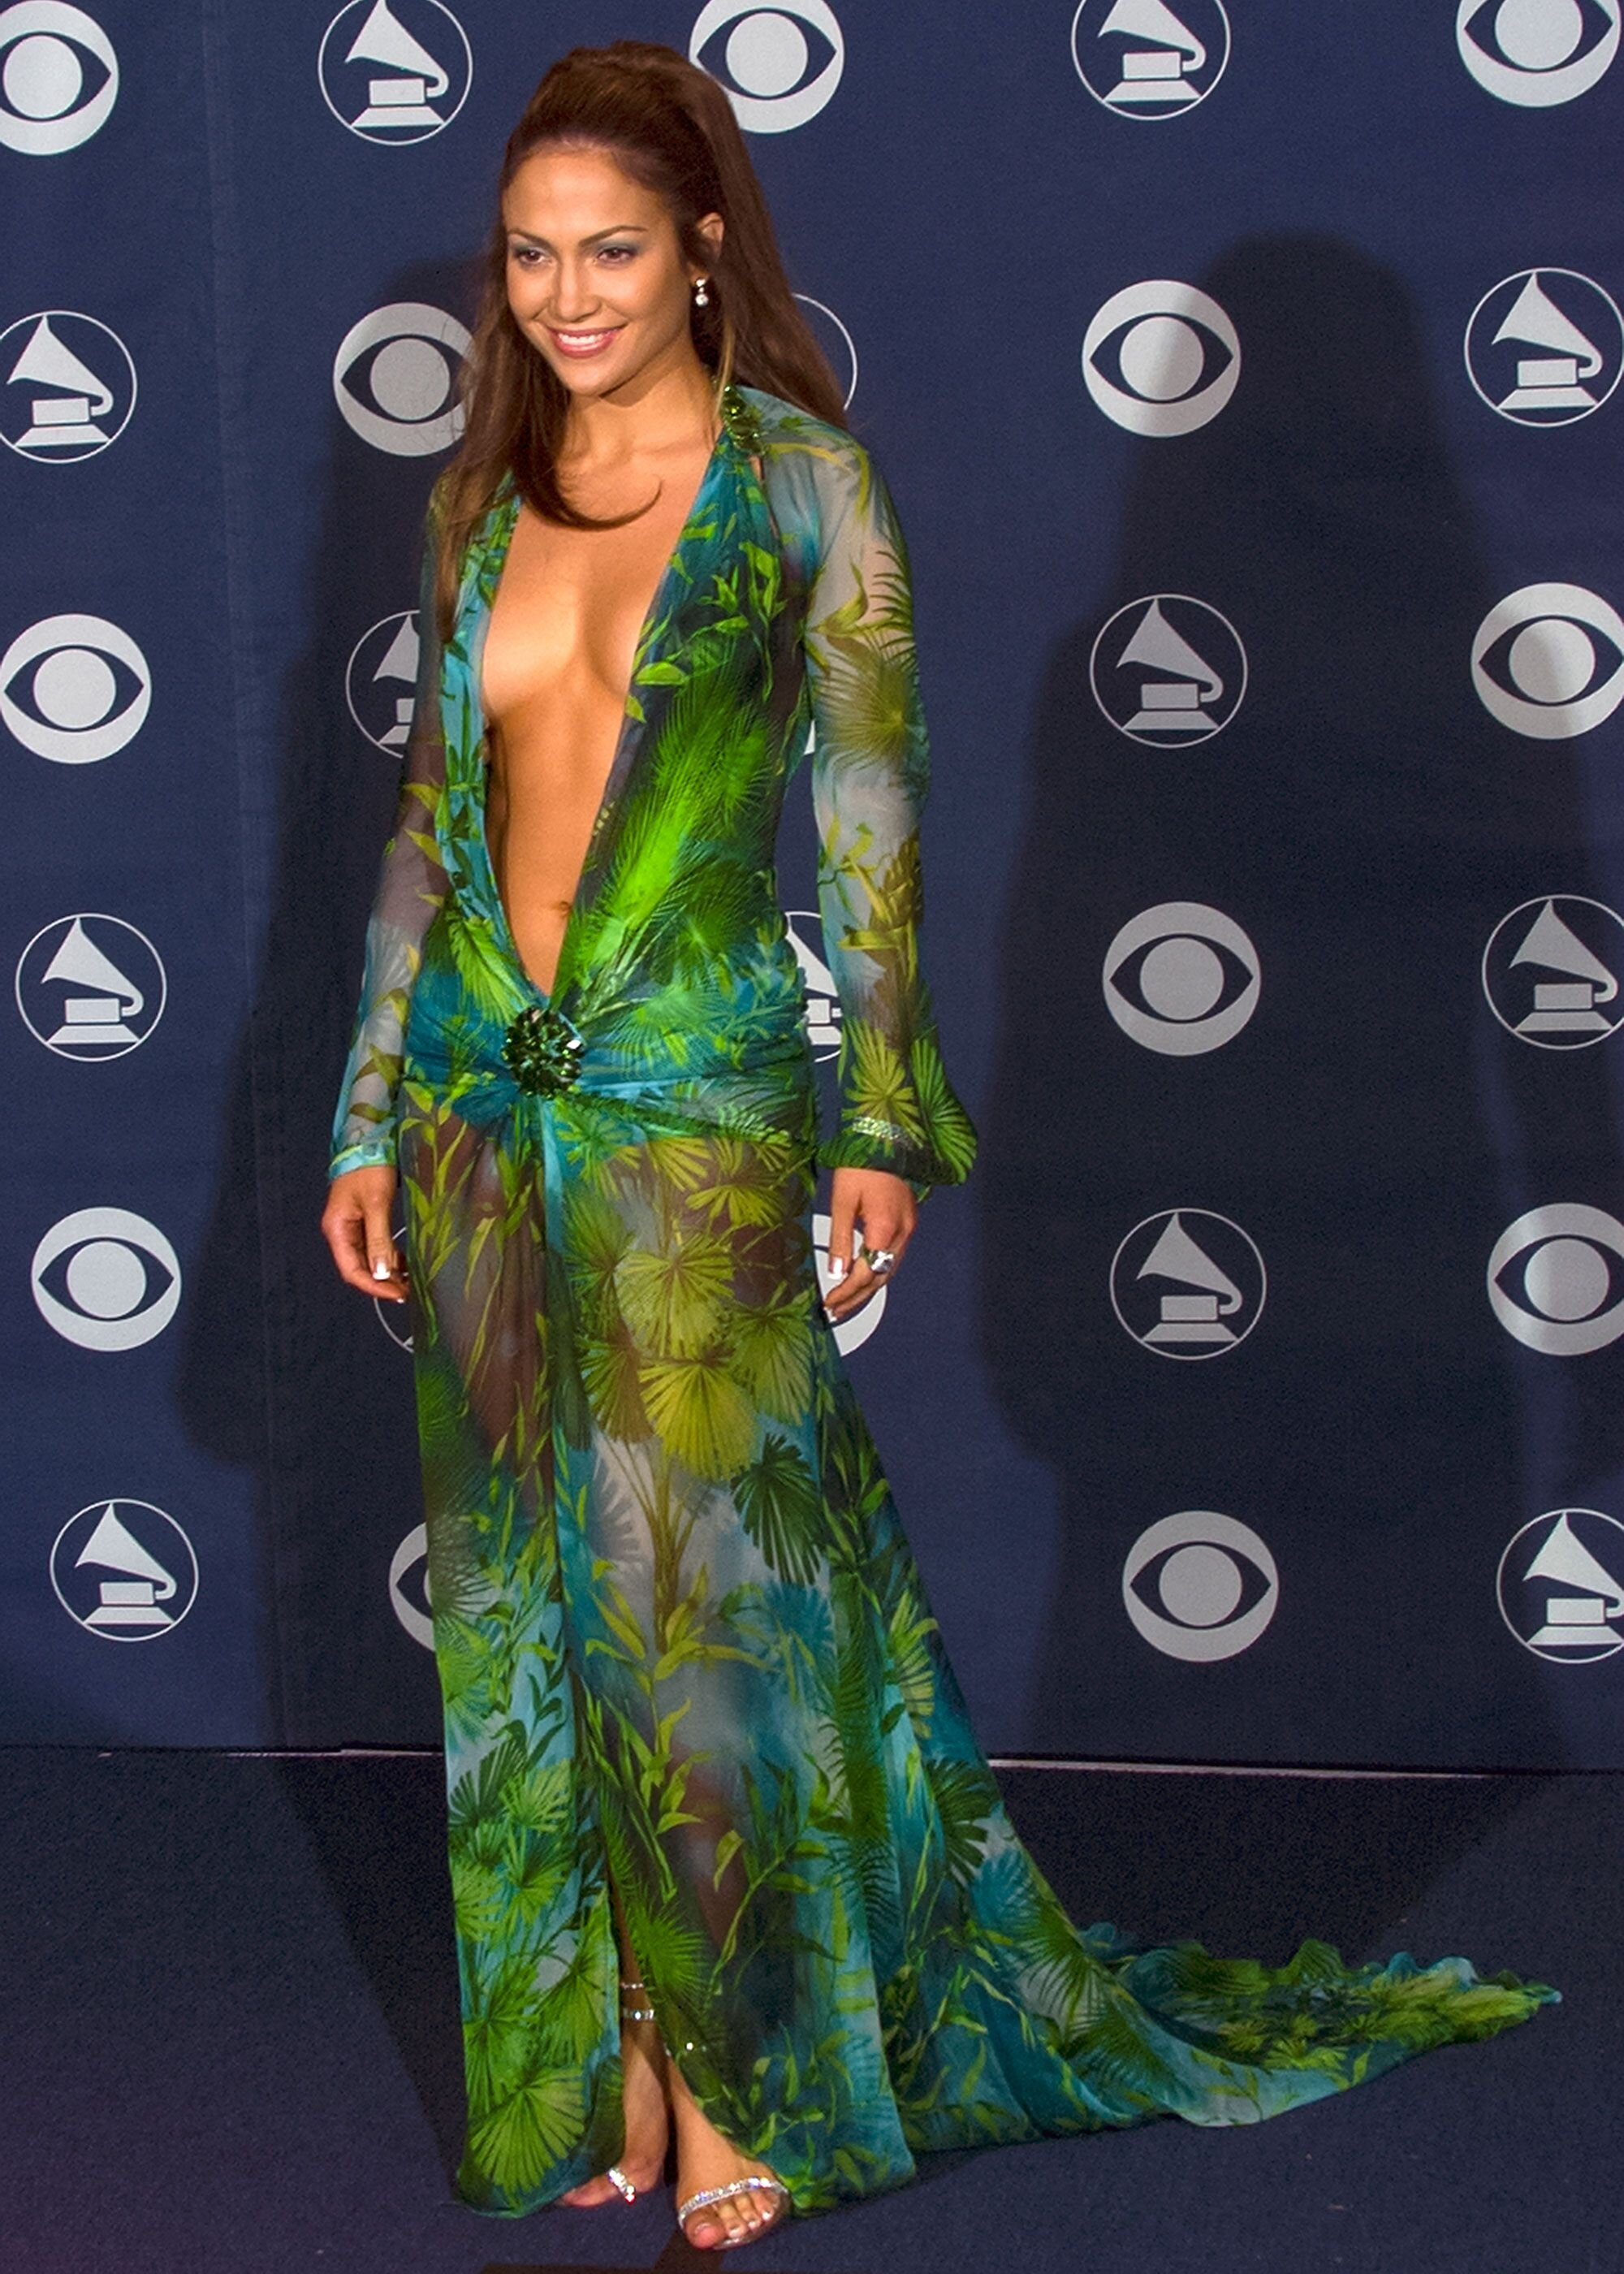 Jennifer Lopez at the Grammys in 2000, wearing the infamous Versace jungle dress that led to the creation of Google Images.